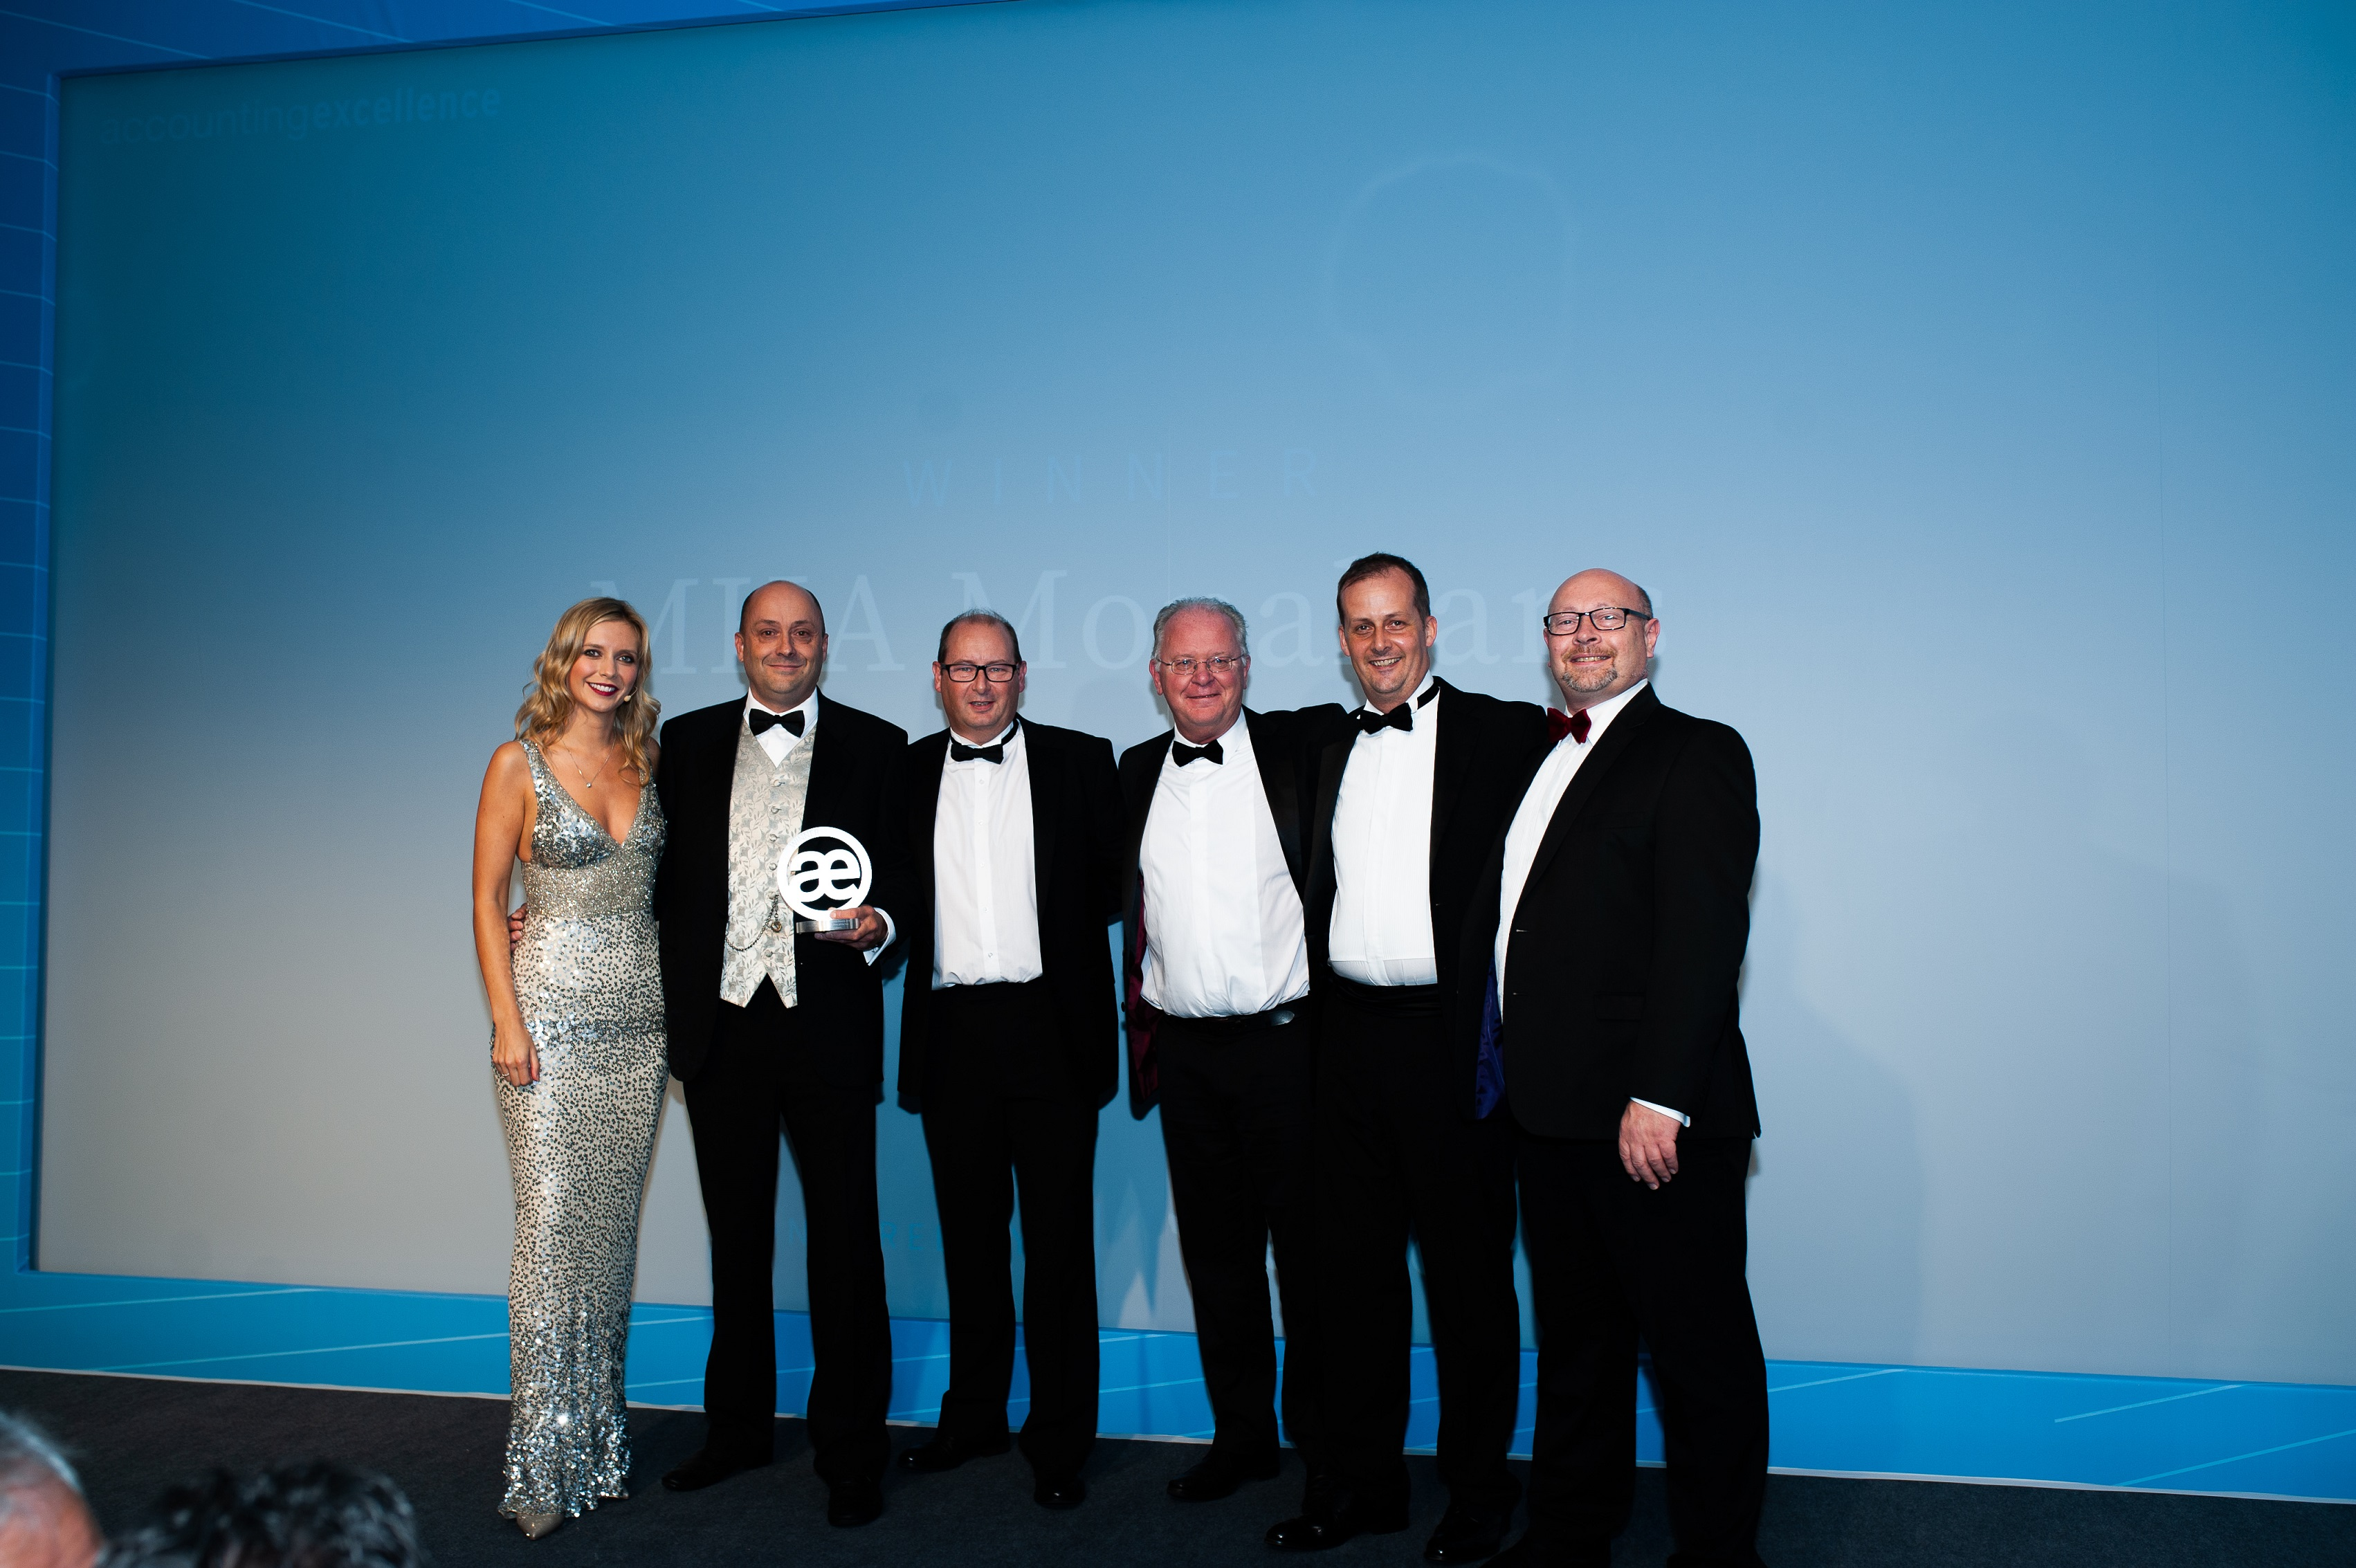 No conundrum as MHA Monahans picks up top accountancy growth award from Countdown star